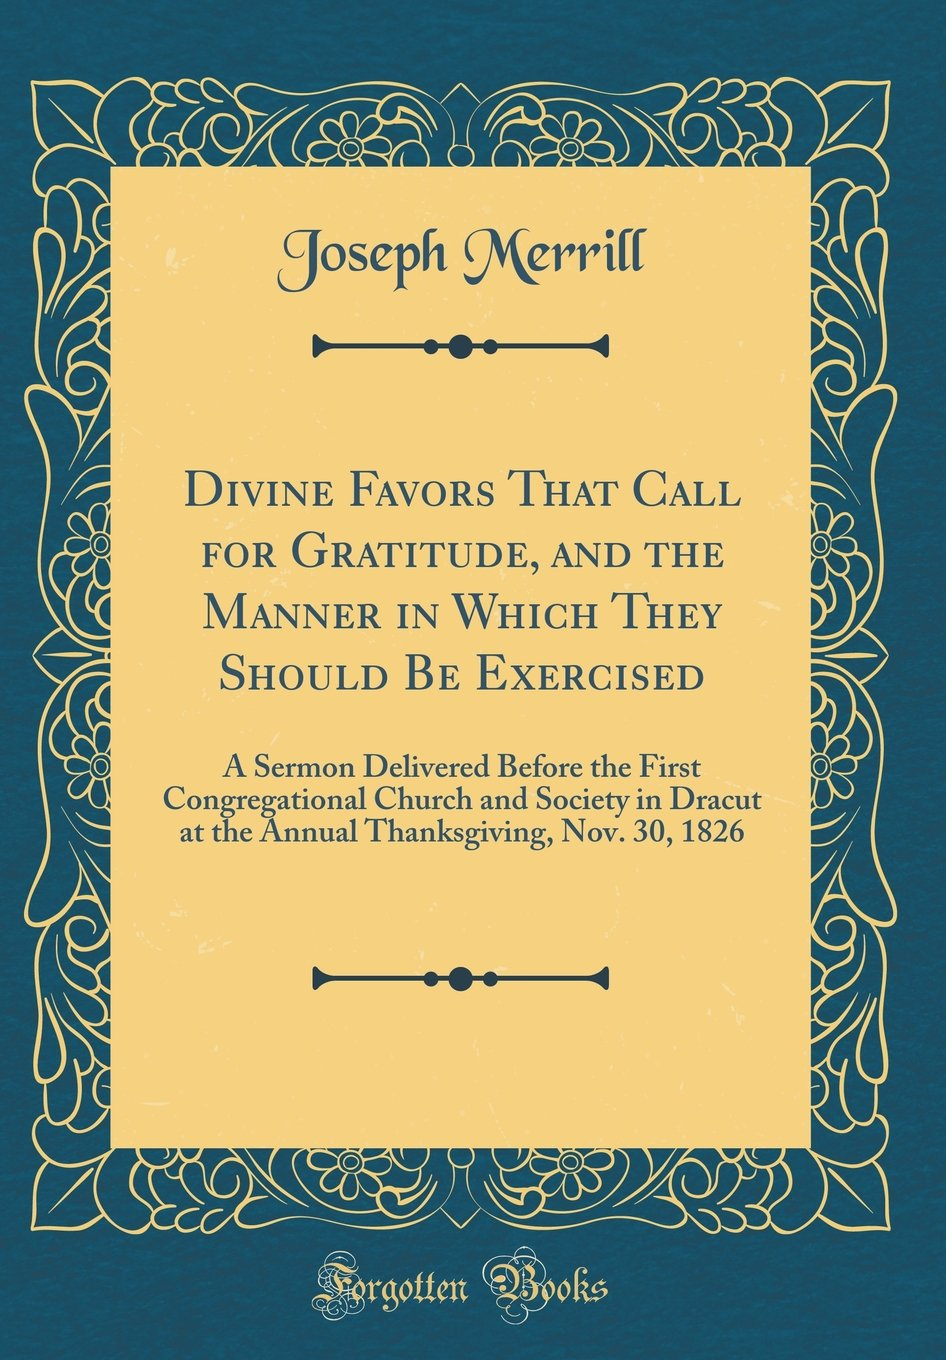 Divine Favors That Call for Gratitude, and the Manner in Which They Should Be Exercised: A Sermon Delivered Before the First Congregational Church and ... Thanksgiving, Nov. 30, 1826 (Classic Reprint) pdf